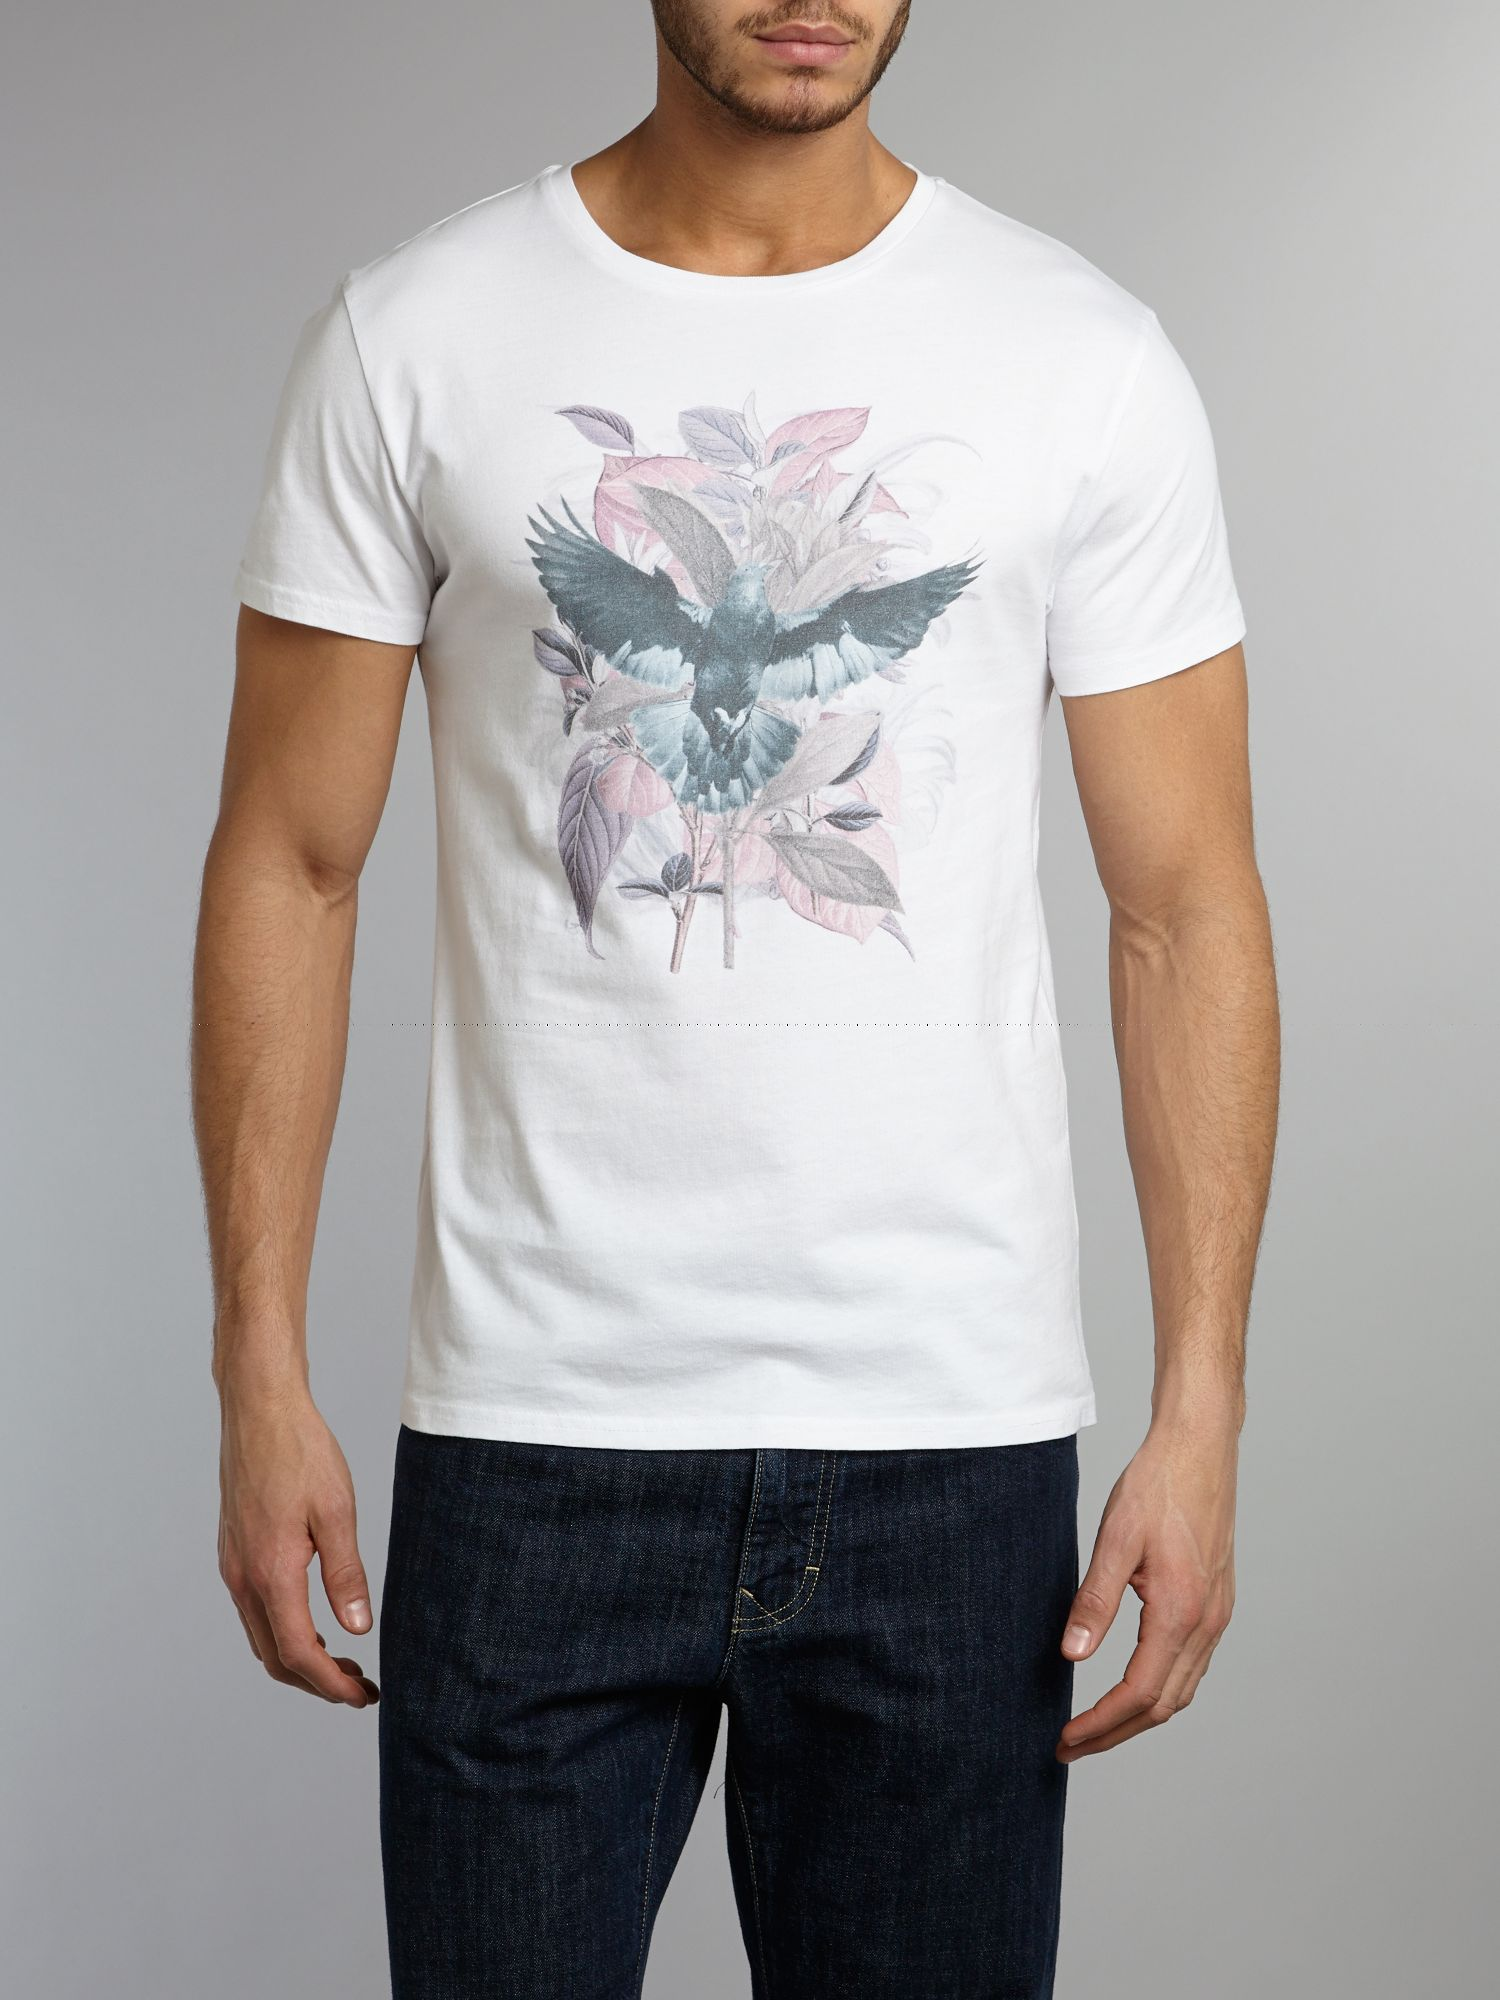 floral birds graphic t-shirt